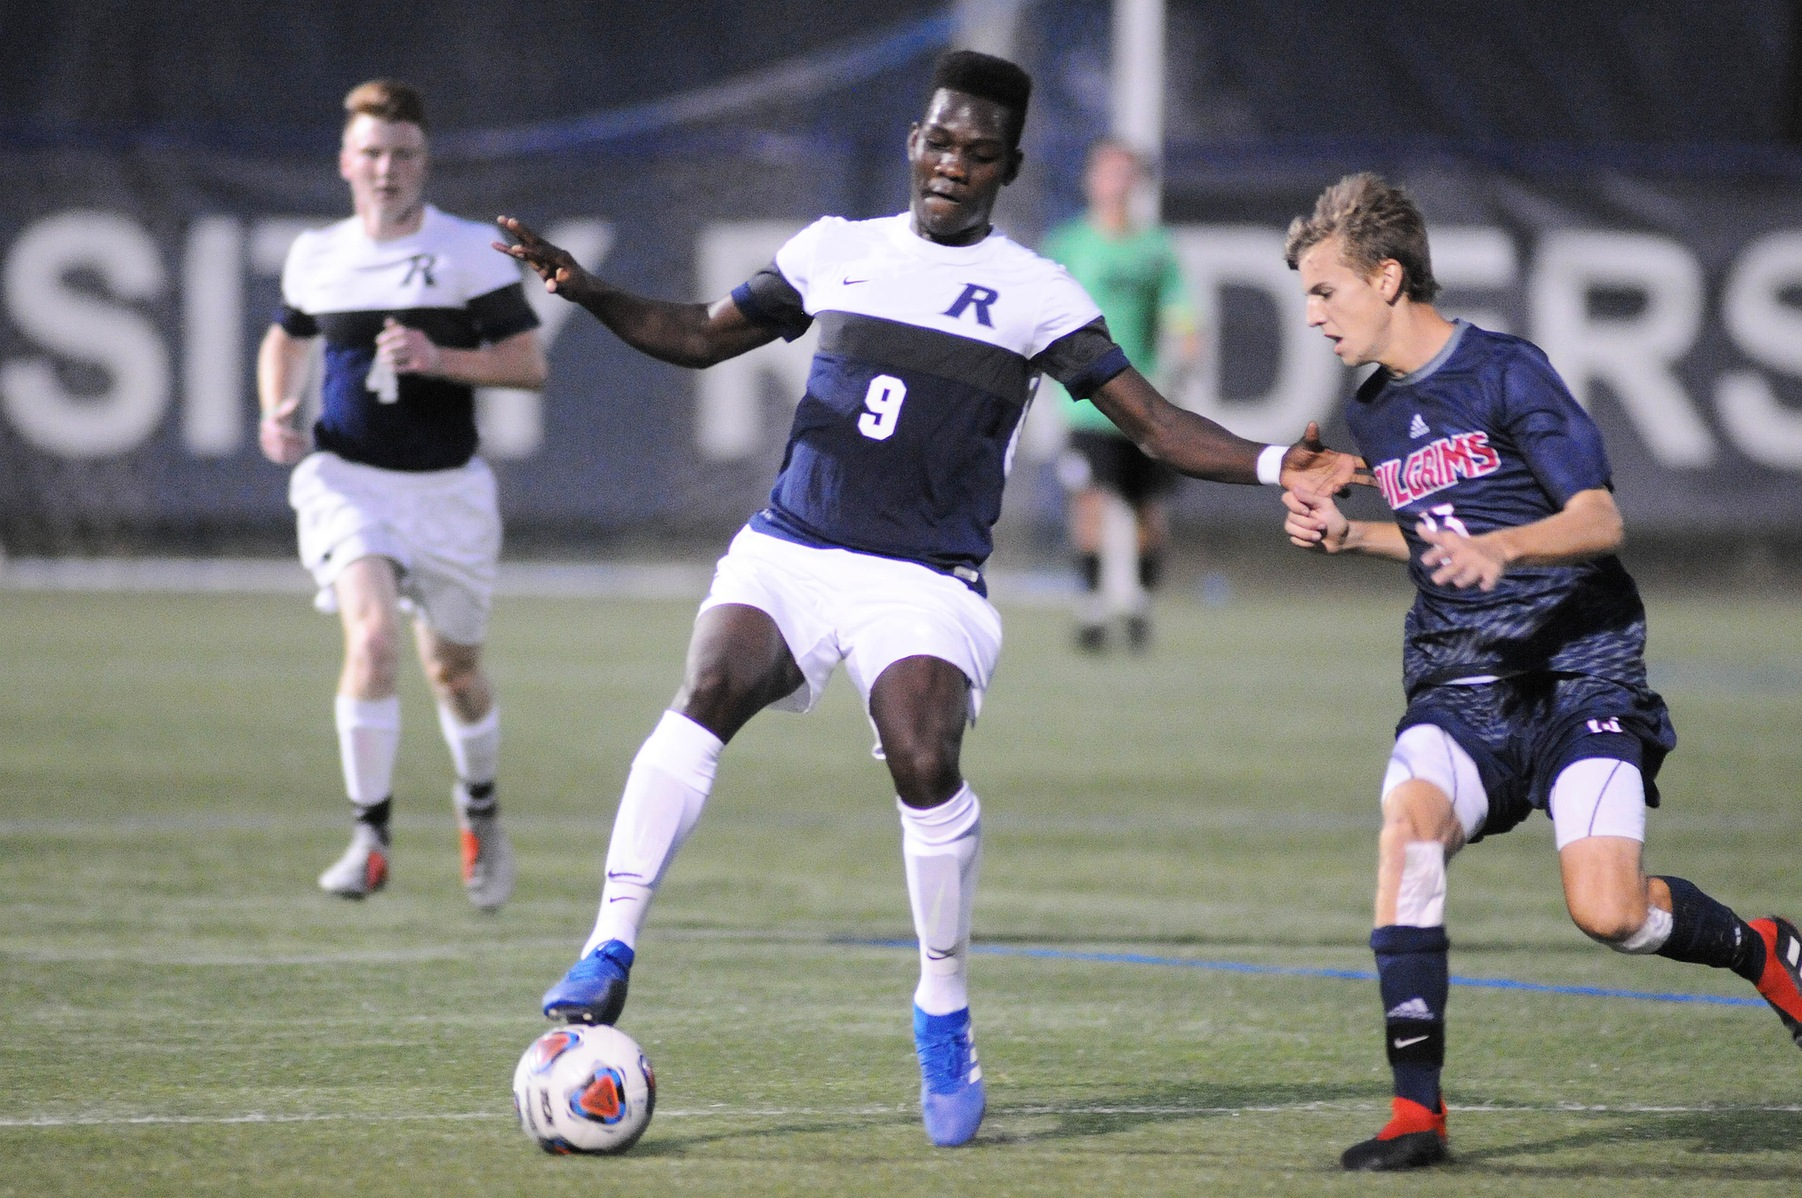 Men's Soccer: Francois nets first career goal in 1-1 draw with Becker